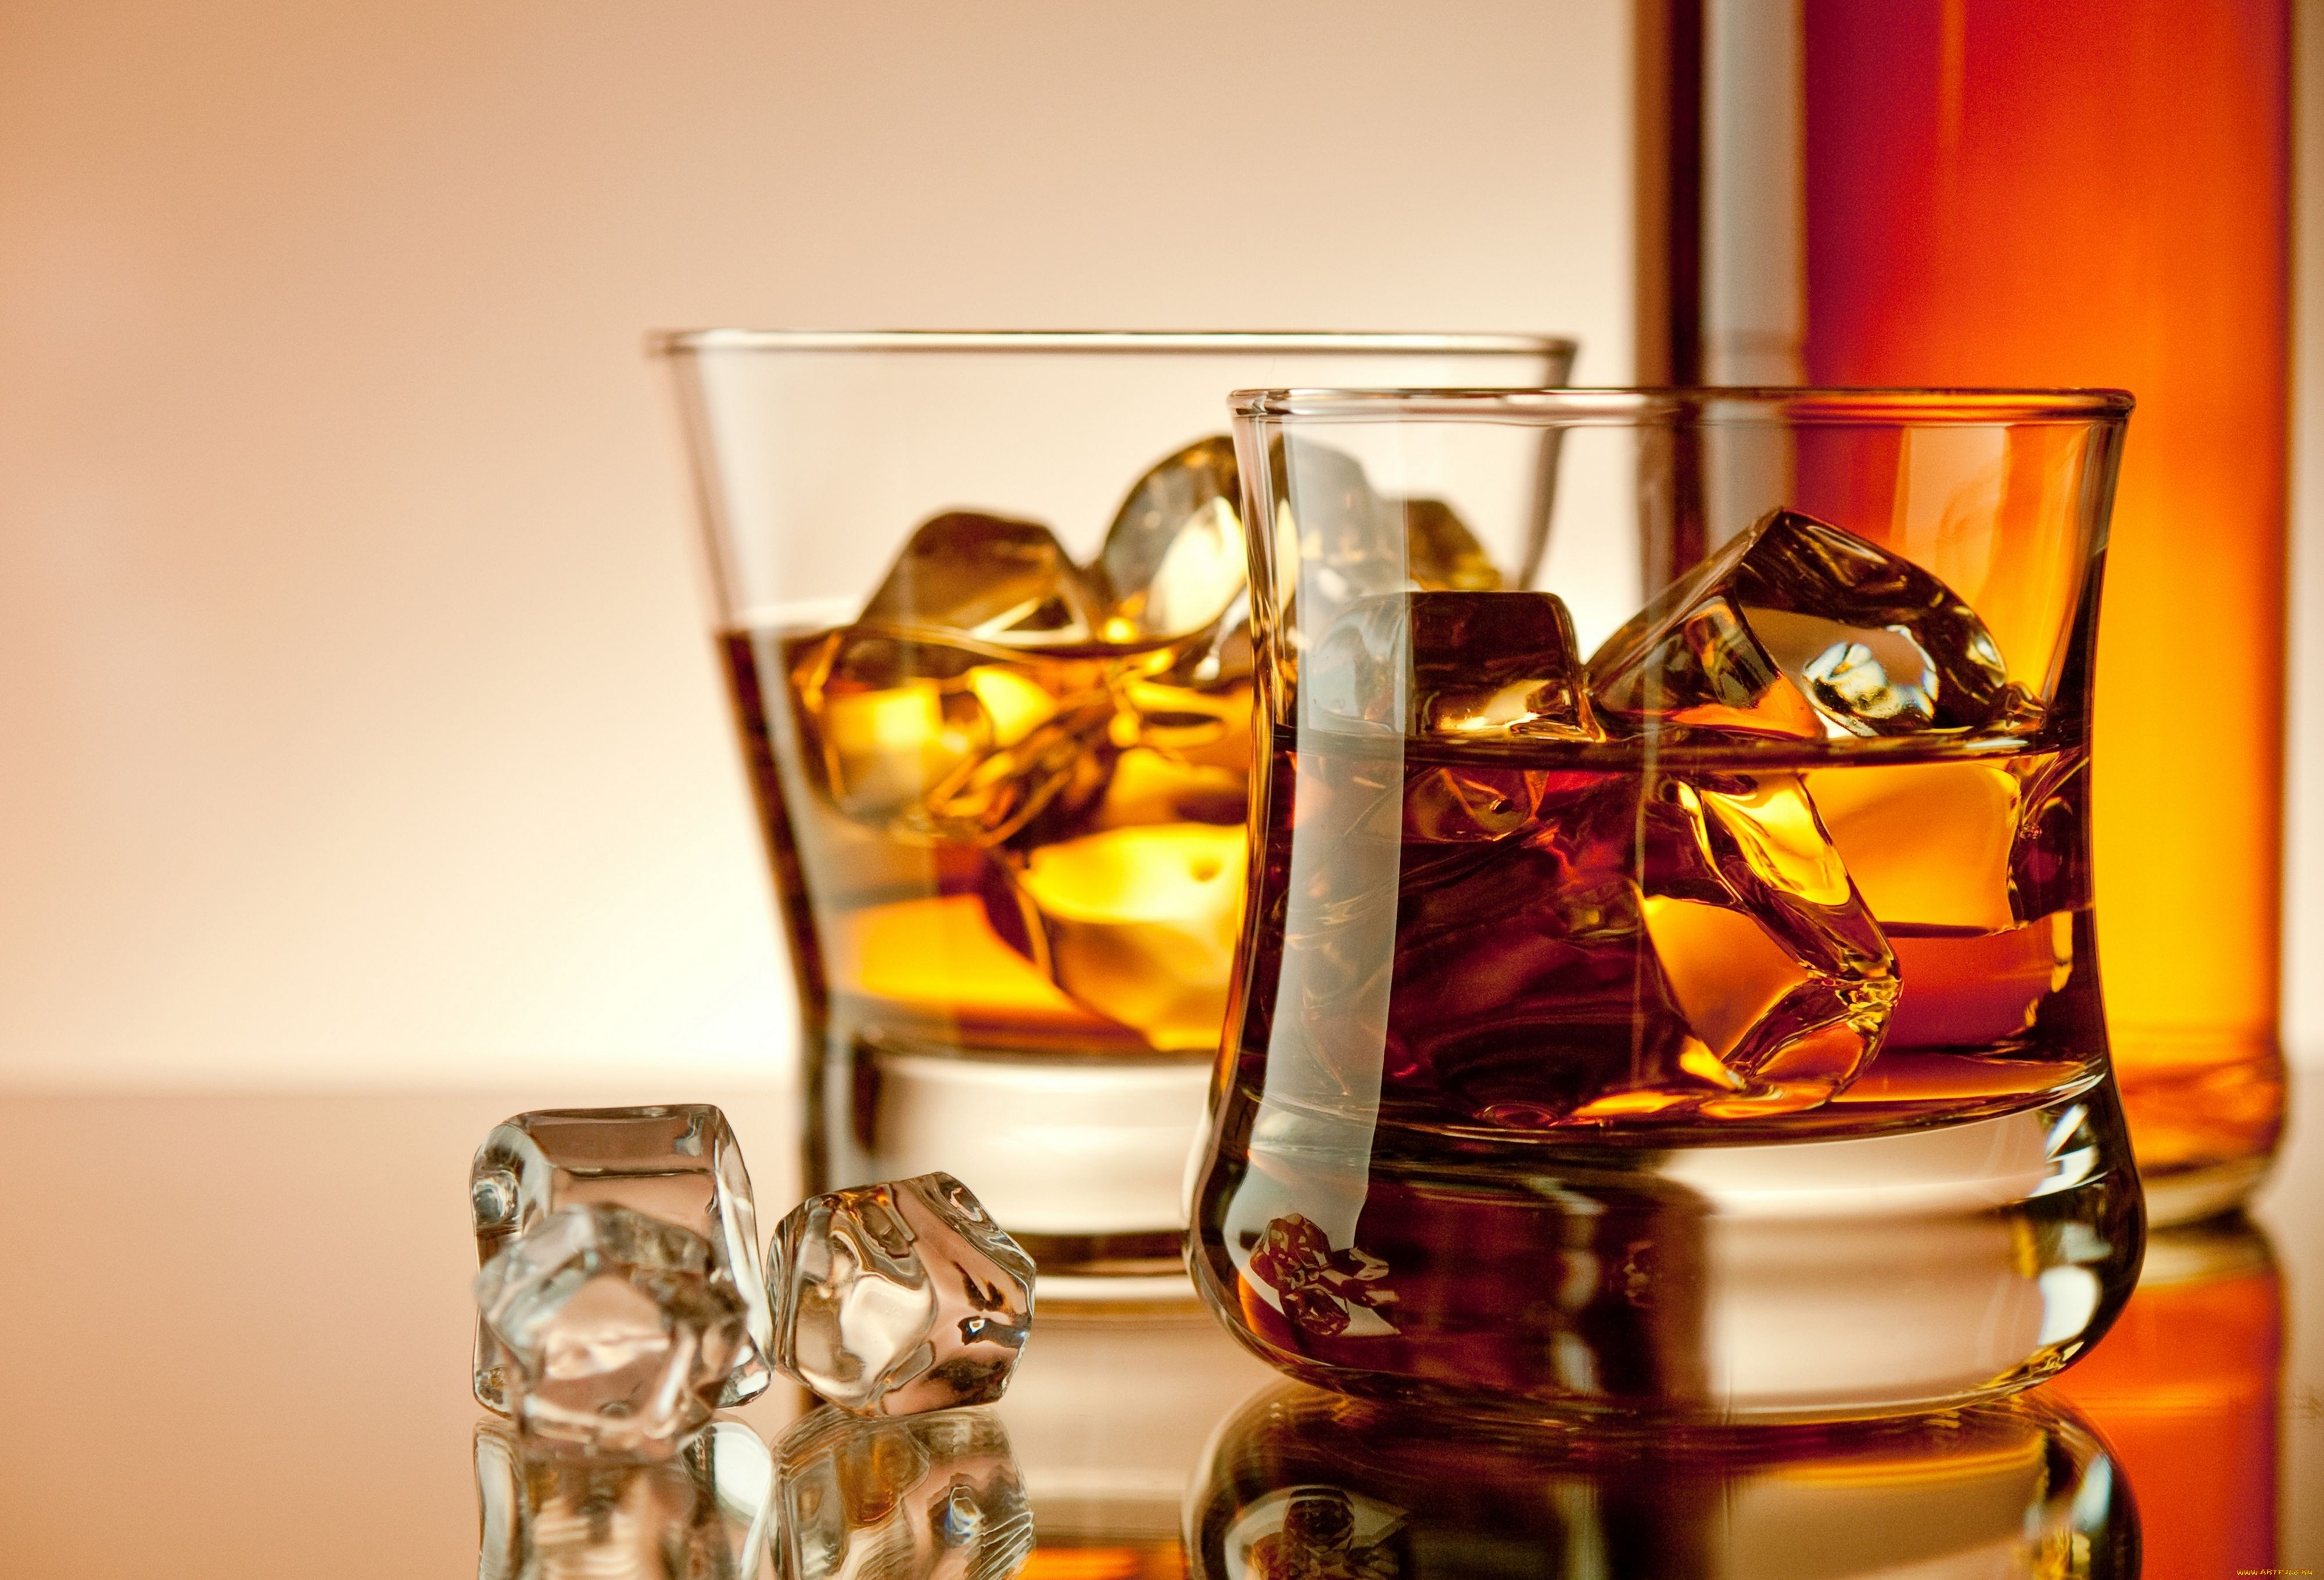 Whisky Full Hd Wallpaper And Background: Whisky 4k Ultra HD Wallpaper And Background